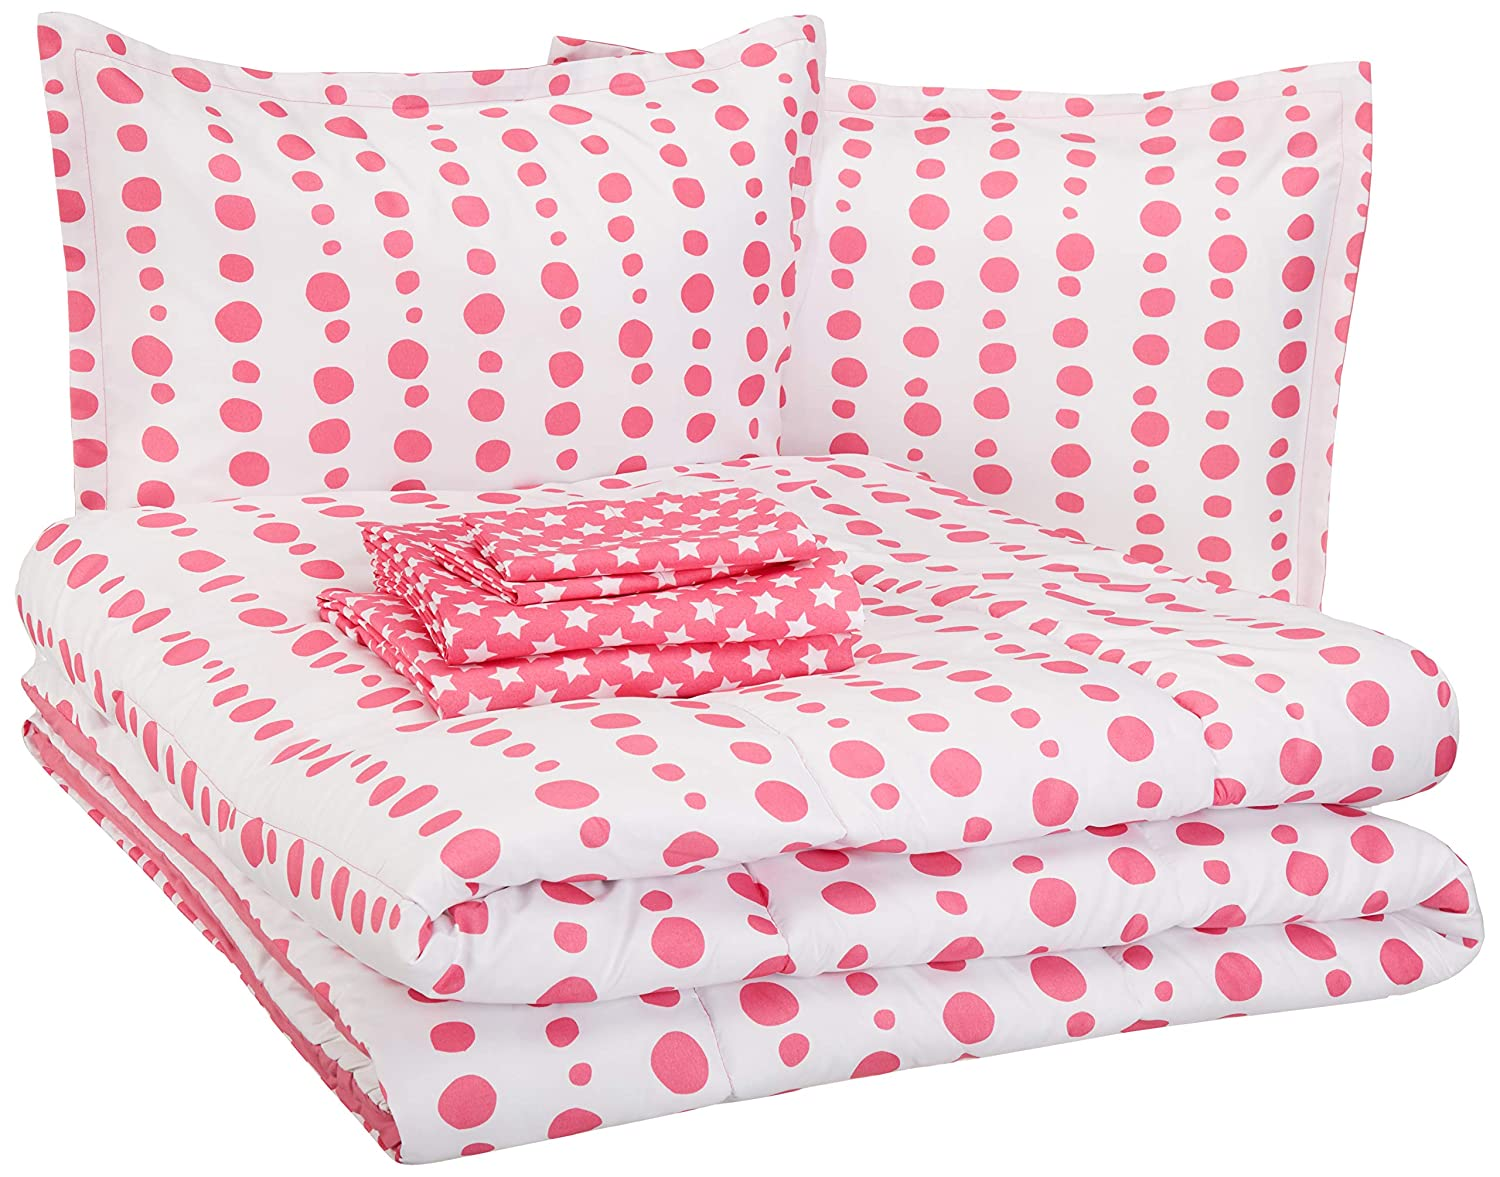 AmazonBasics Kid's Bed-in-a-Bag - Soft, Easy-Wash Microfiber - Full/Queen, Pink Dotted Line